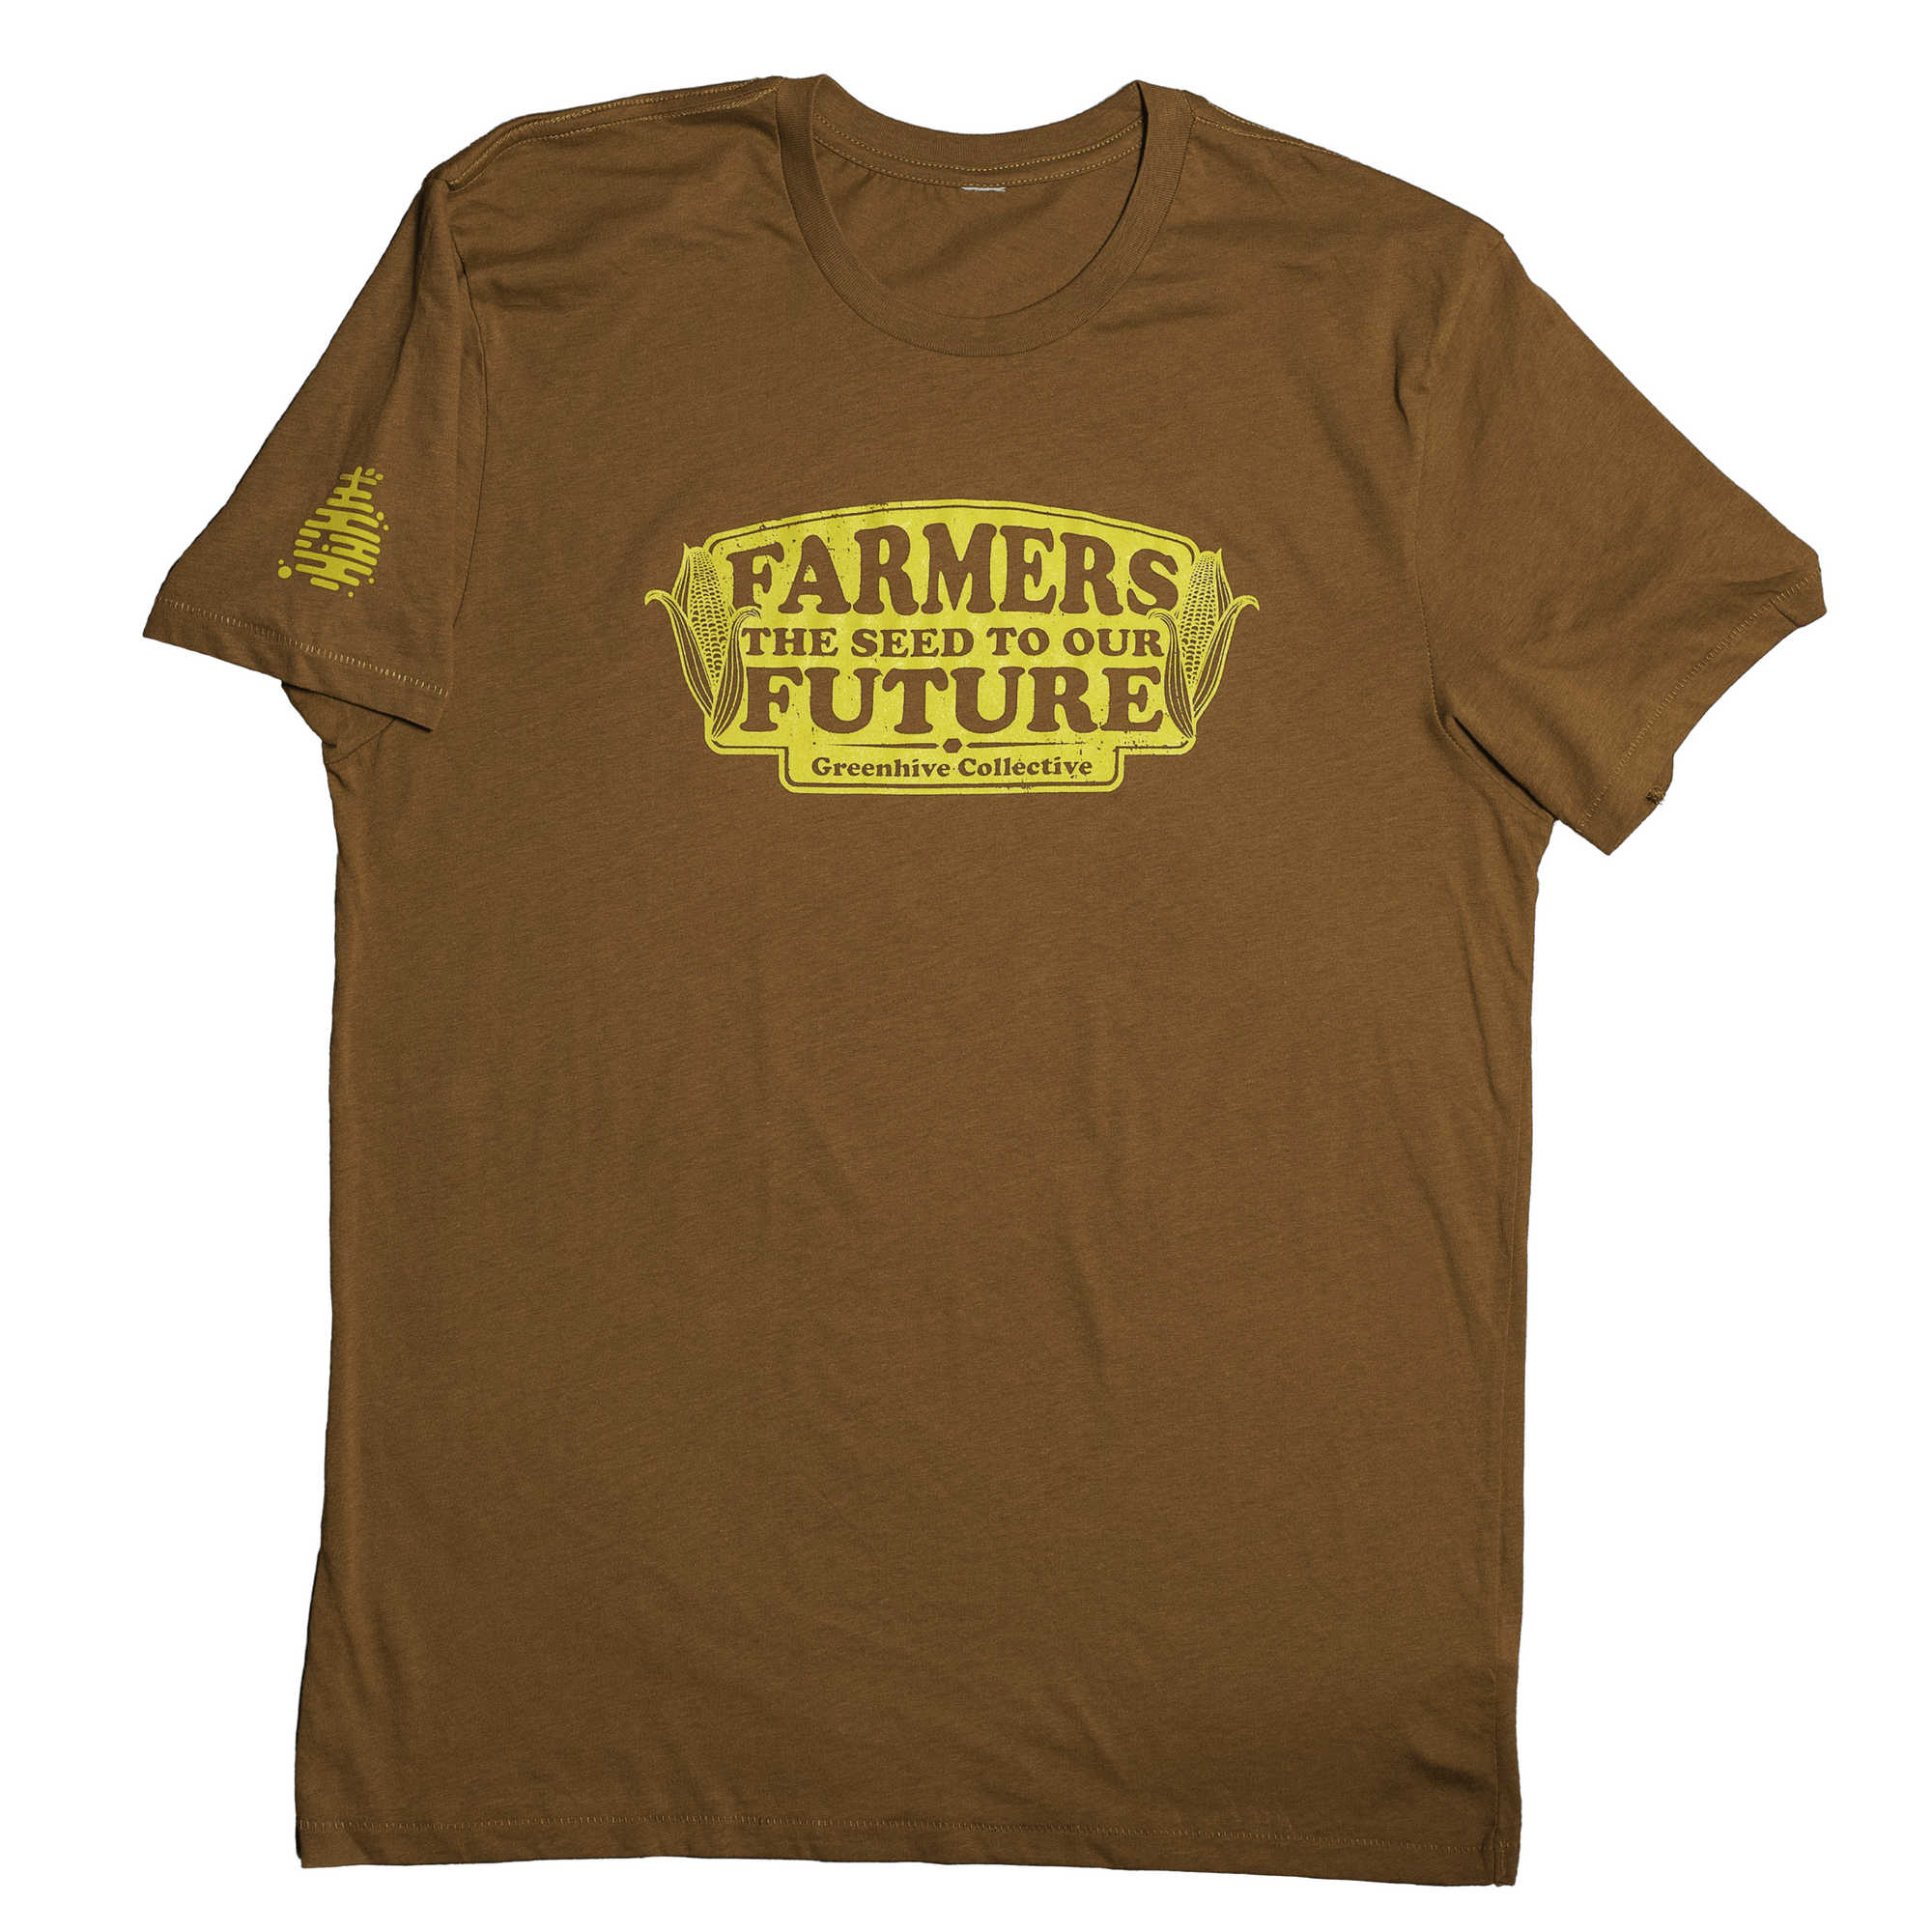 Future Farmers - GreenHive Collective - ECO-FRIENDLY APPAREL